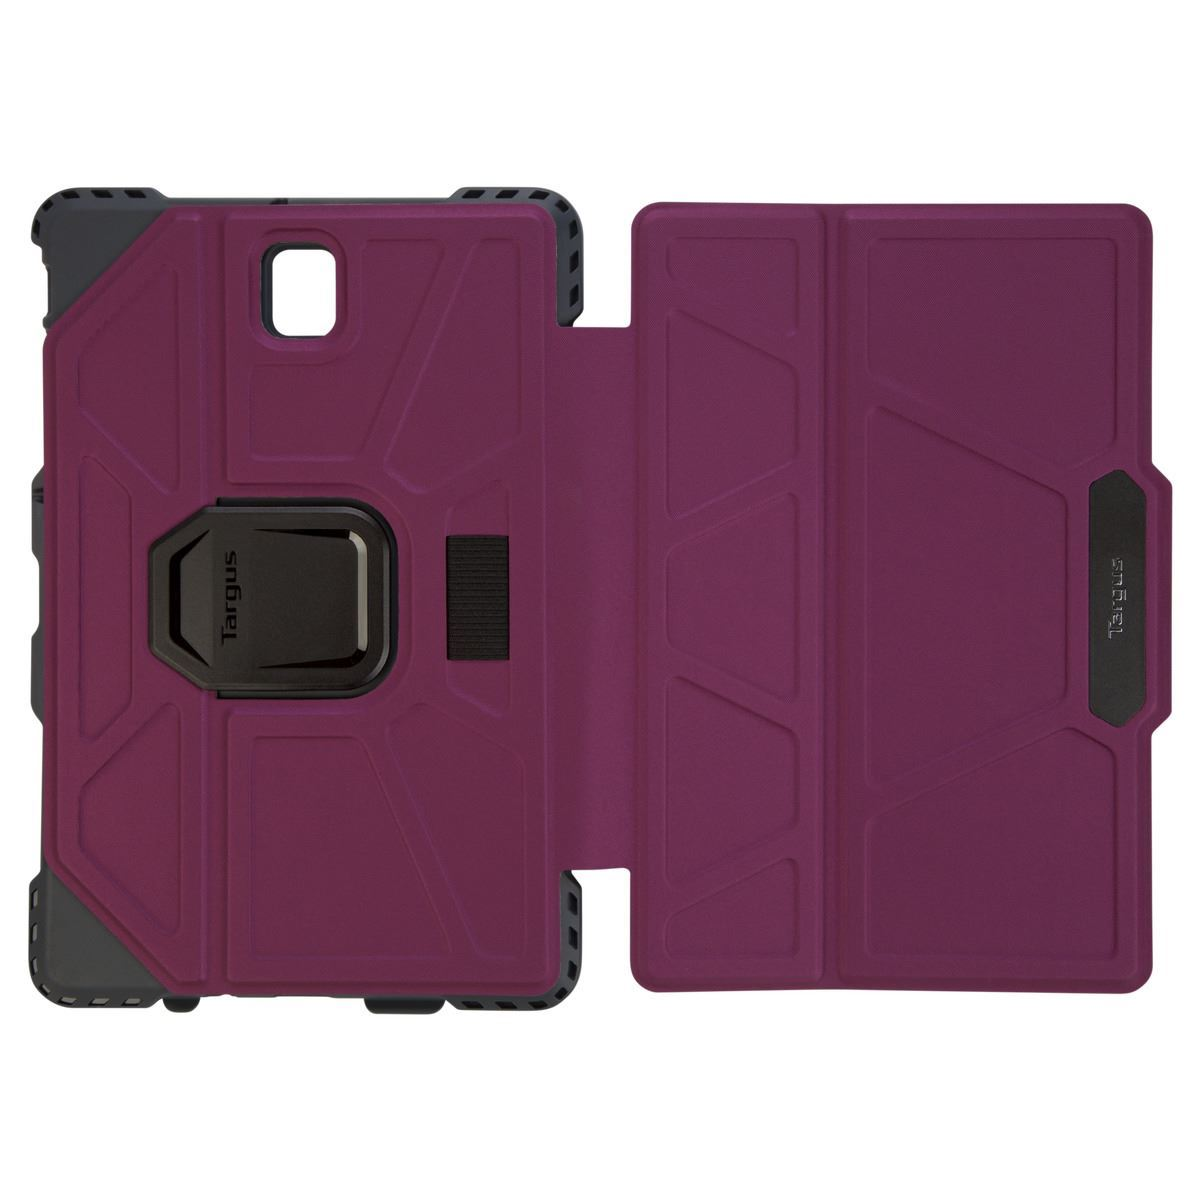 "Picture of Pro-Tek Rotating case for Samsung Galaxy S4 10.5"" (2018) - Berry"